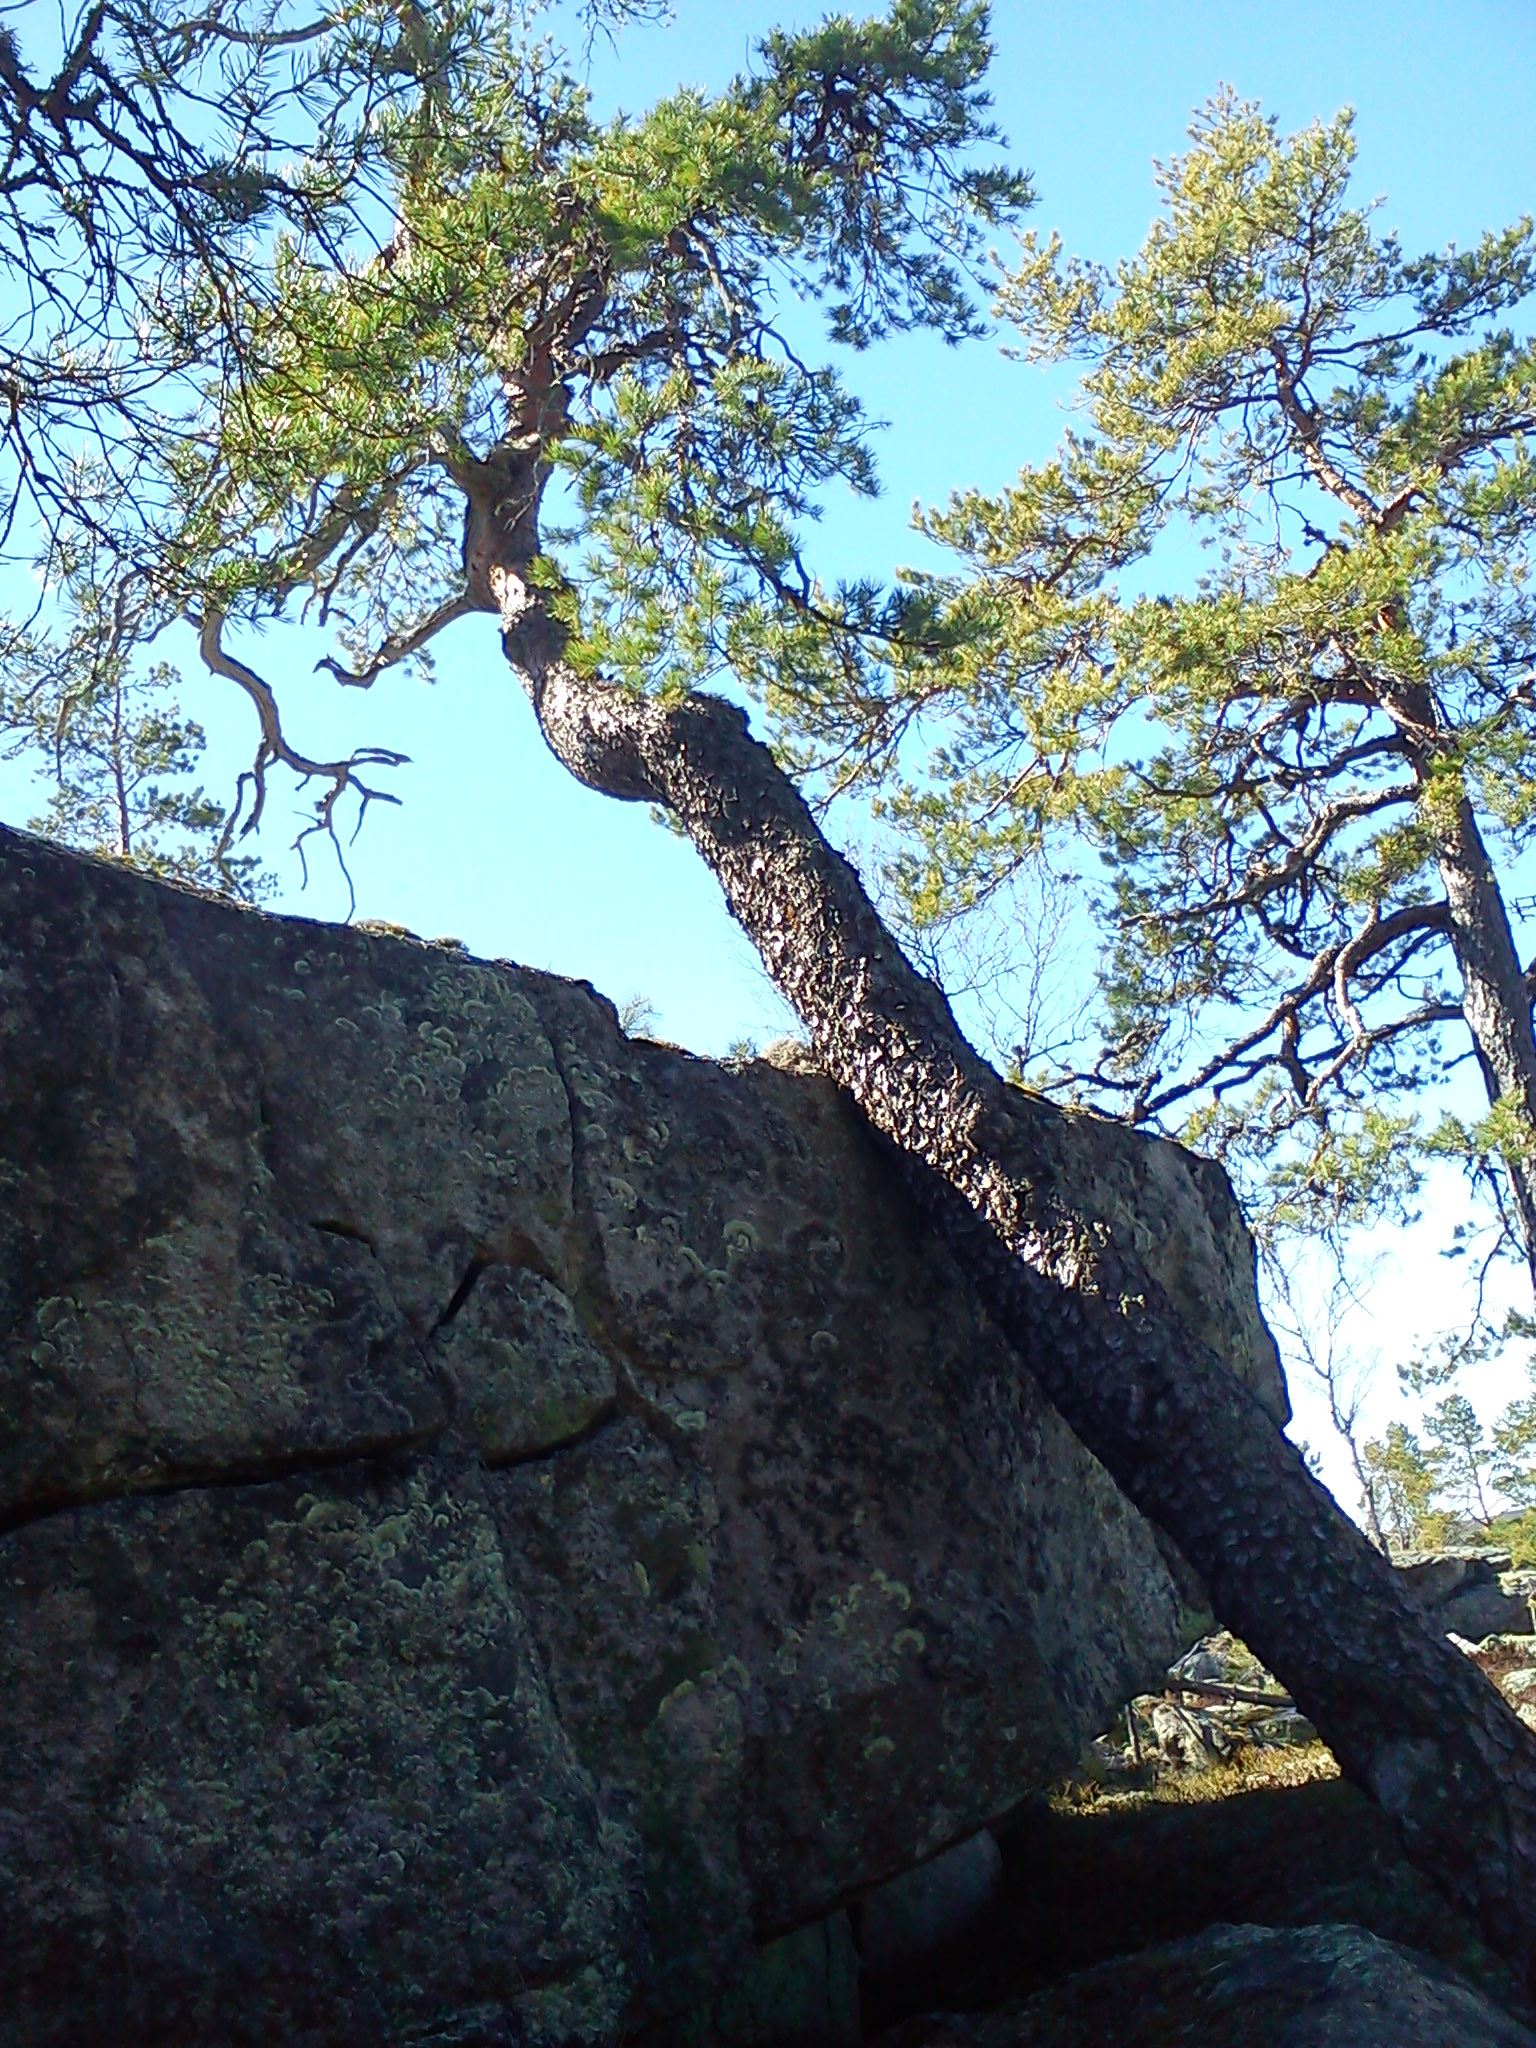 27th of May Hikingtour looking at the oldest pine in Sweden